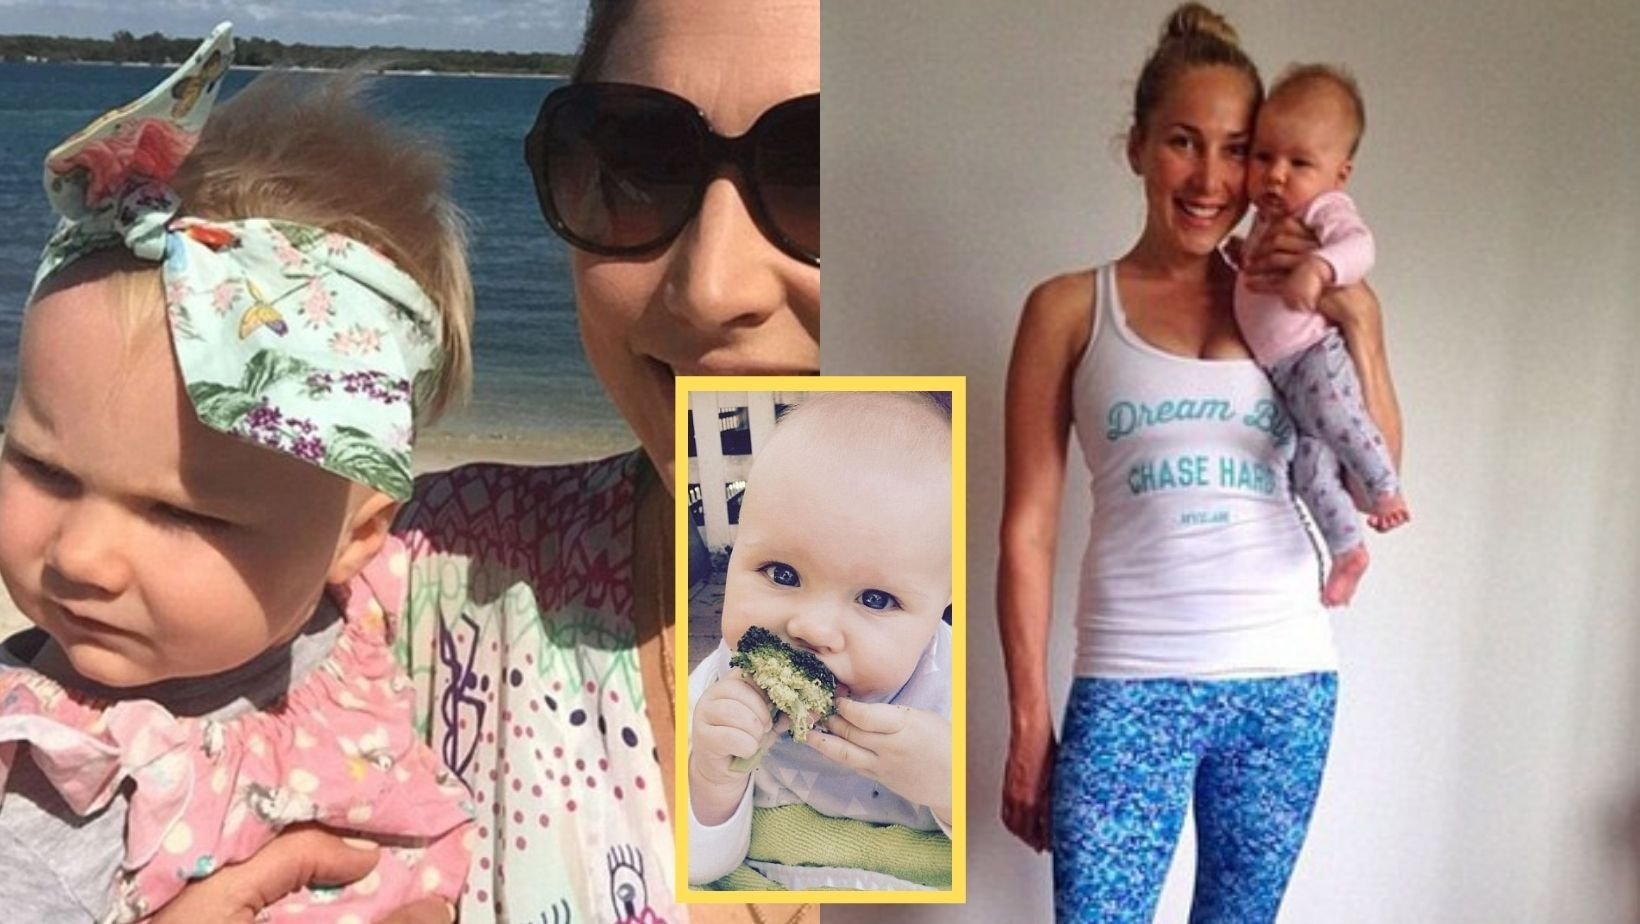 1 64.jpg?resize=412,232 - Fitness Fanatic Mom Says Her Daughter NEVER Ate Carbs & Is On Paleo Diet Since Birth